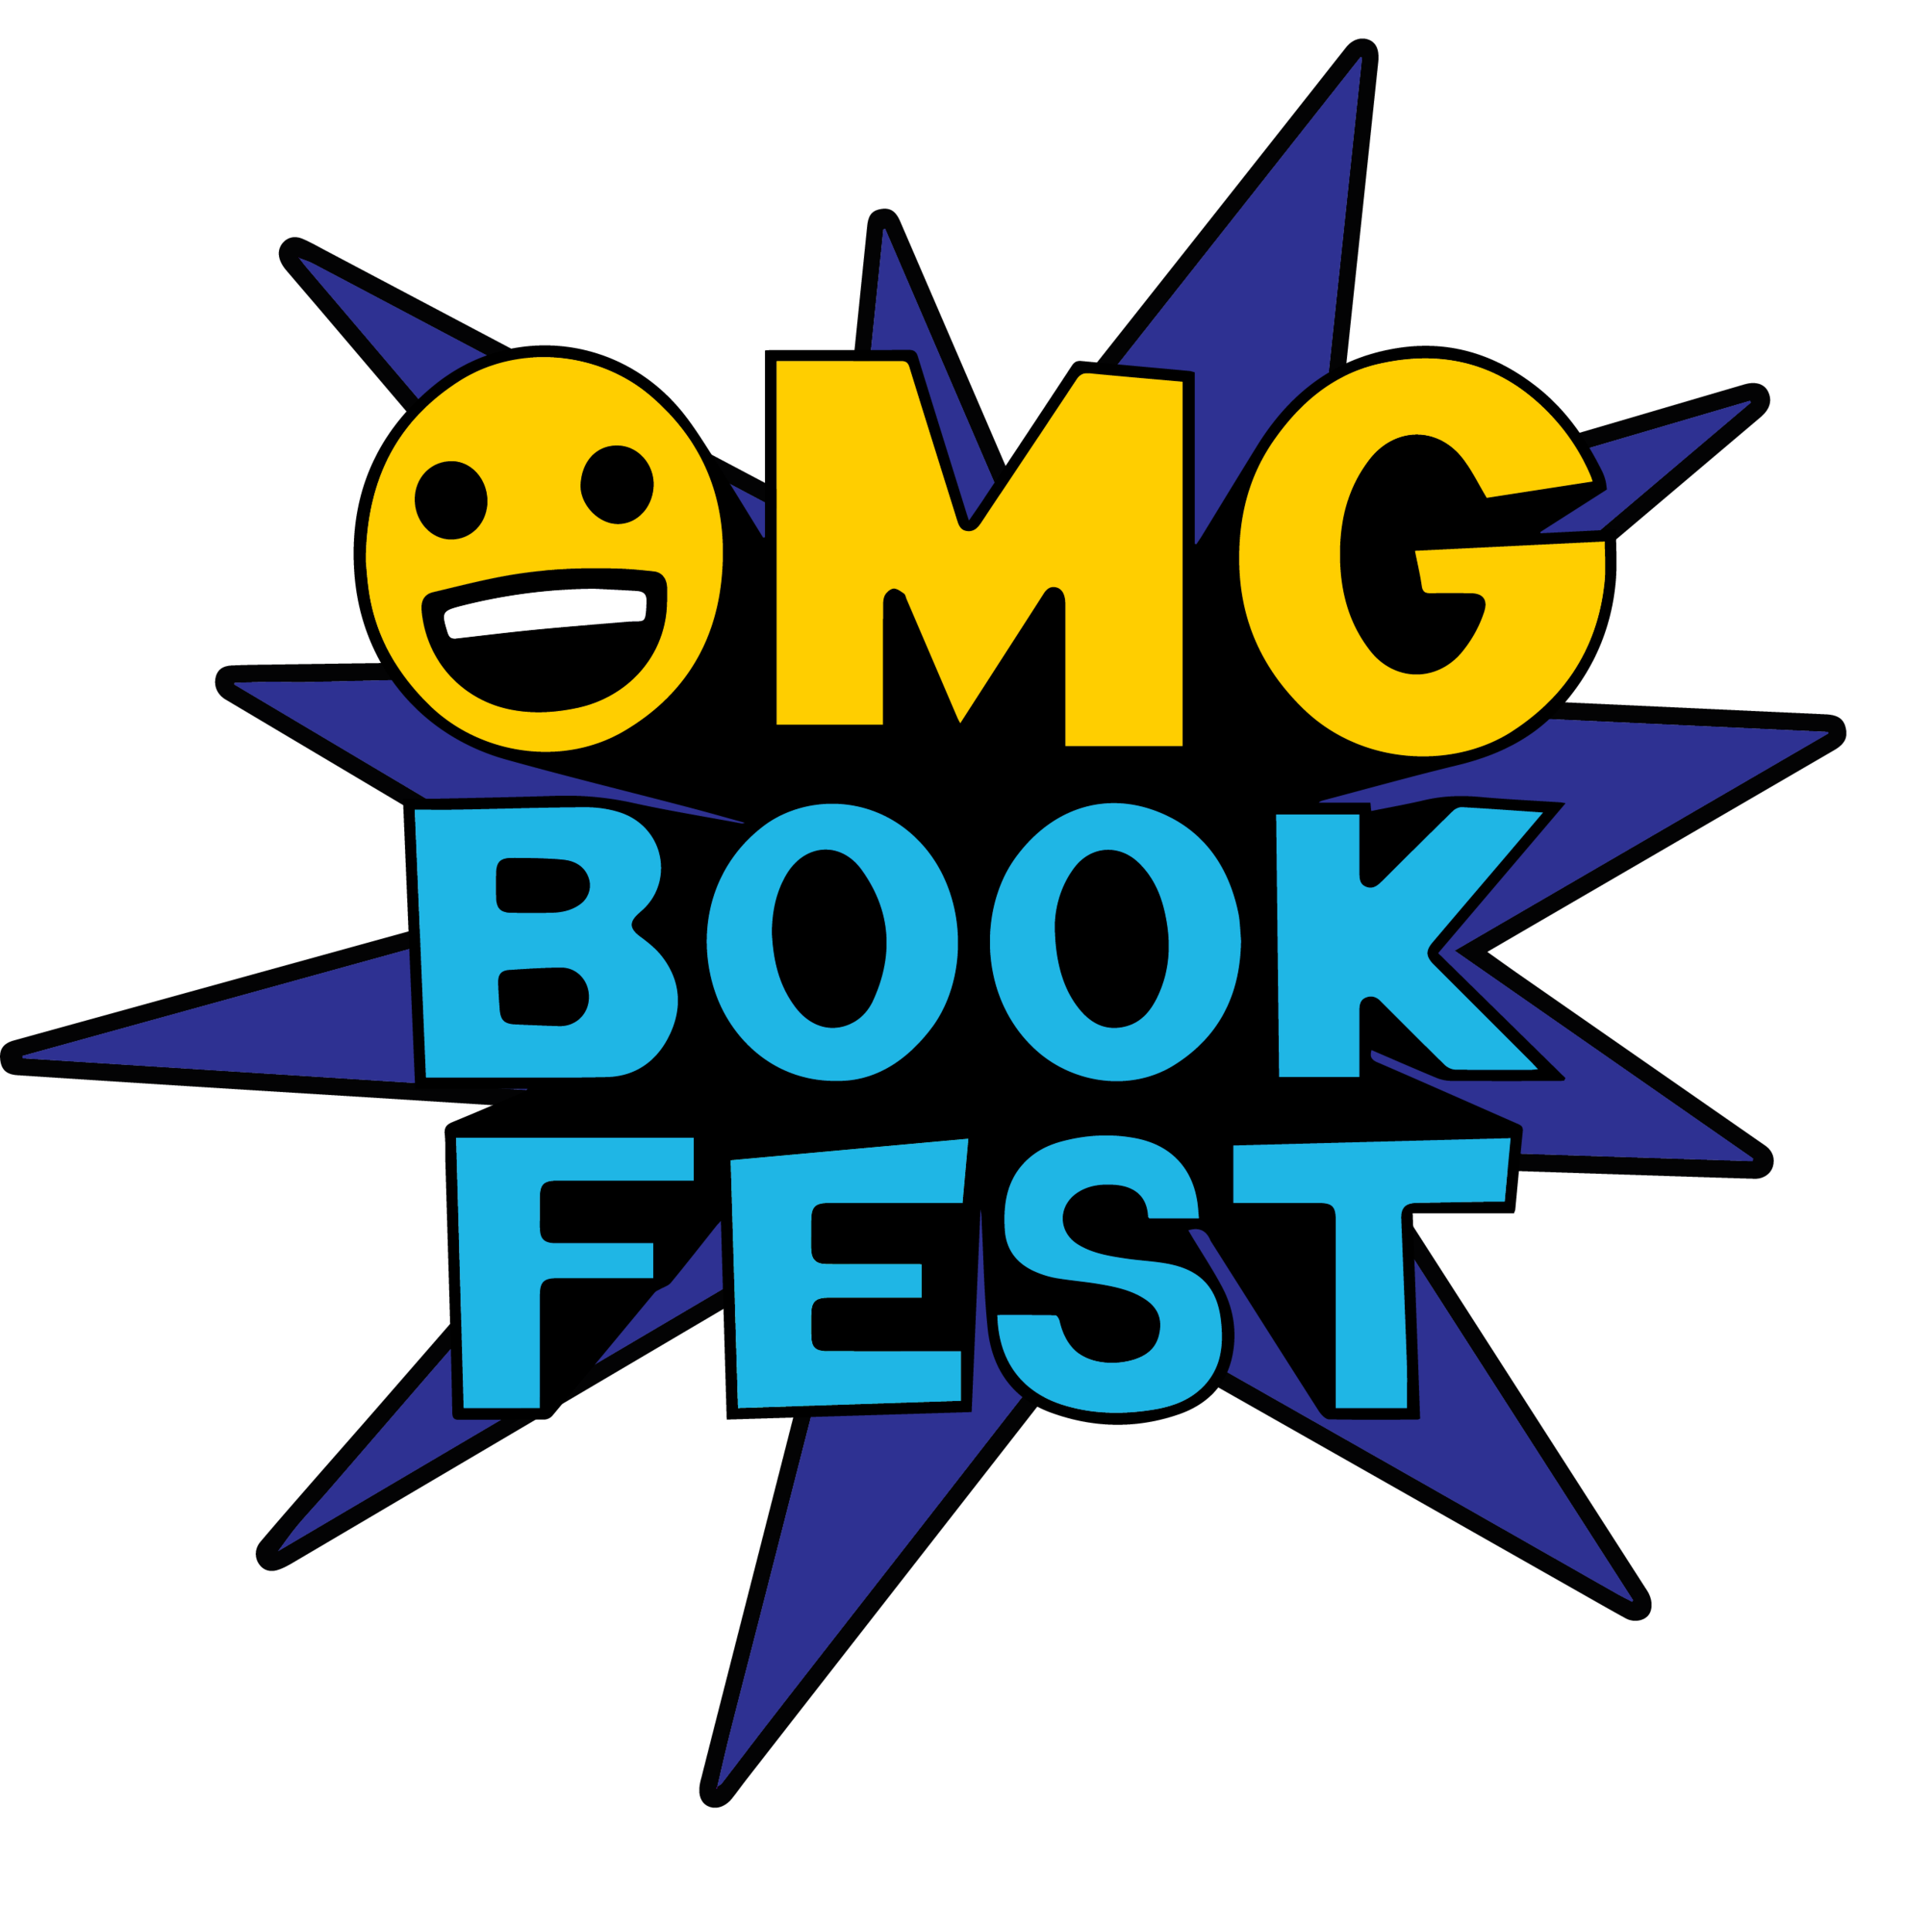 OMG BookFest — Board Member   OMG BookFest is a celebration of books aimed at the early to middle grade reader (ages 7-12) that brings together commercial and award-winning authors with underserved local communities for an exciting experience of books, games and activities.